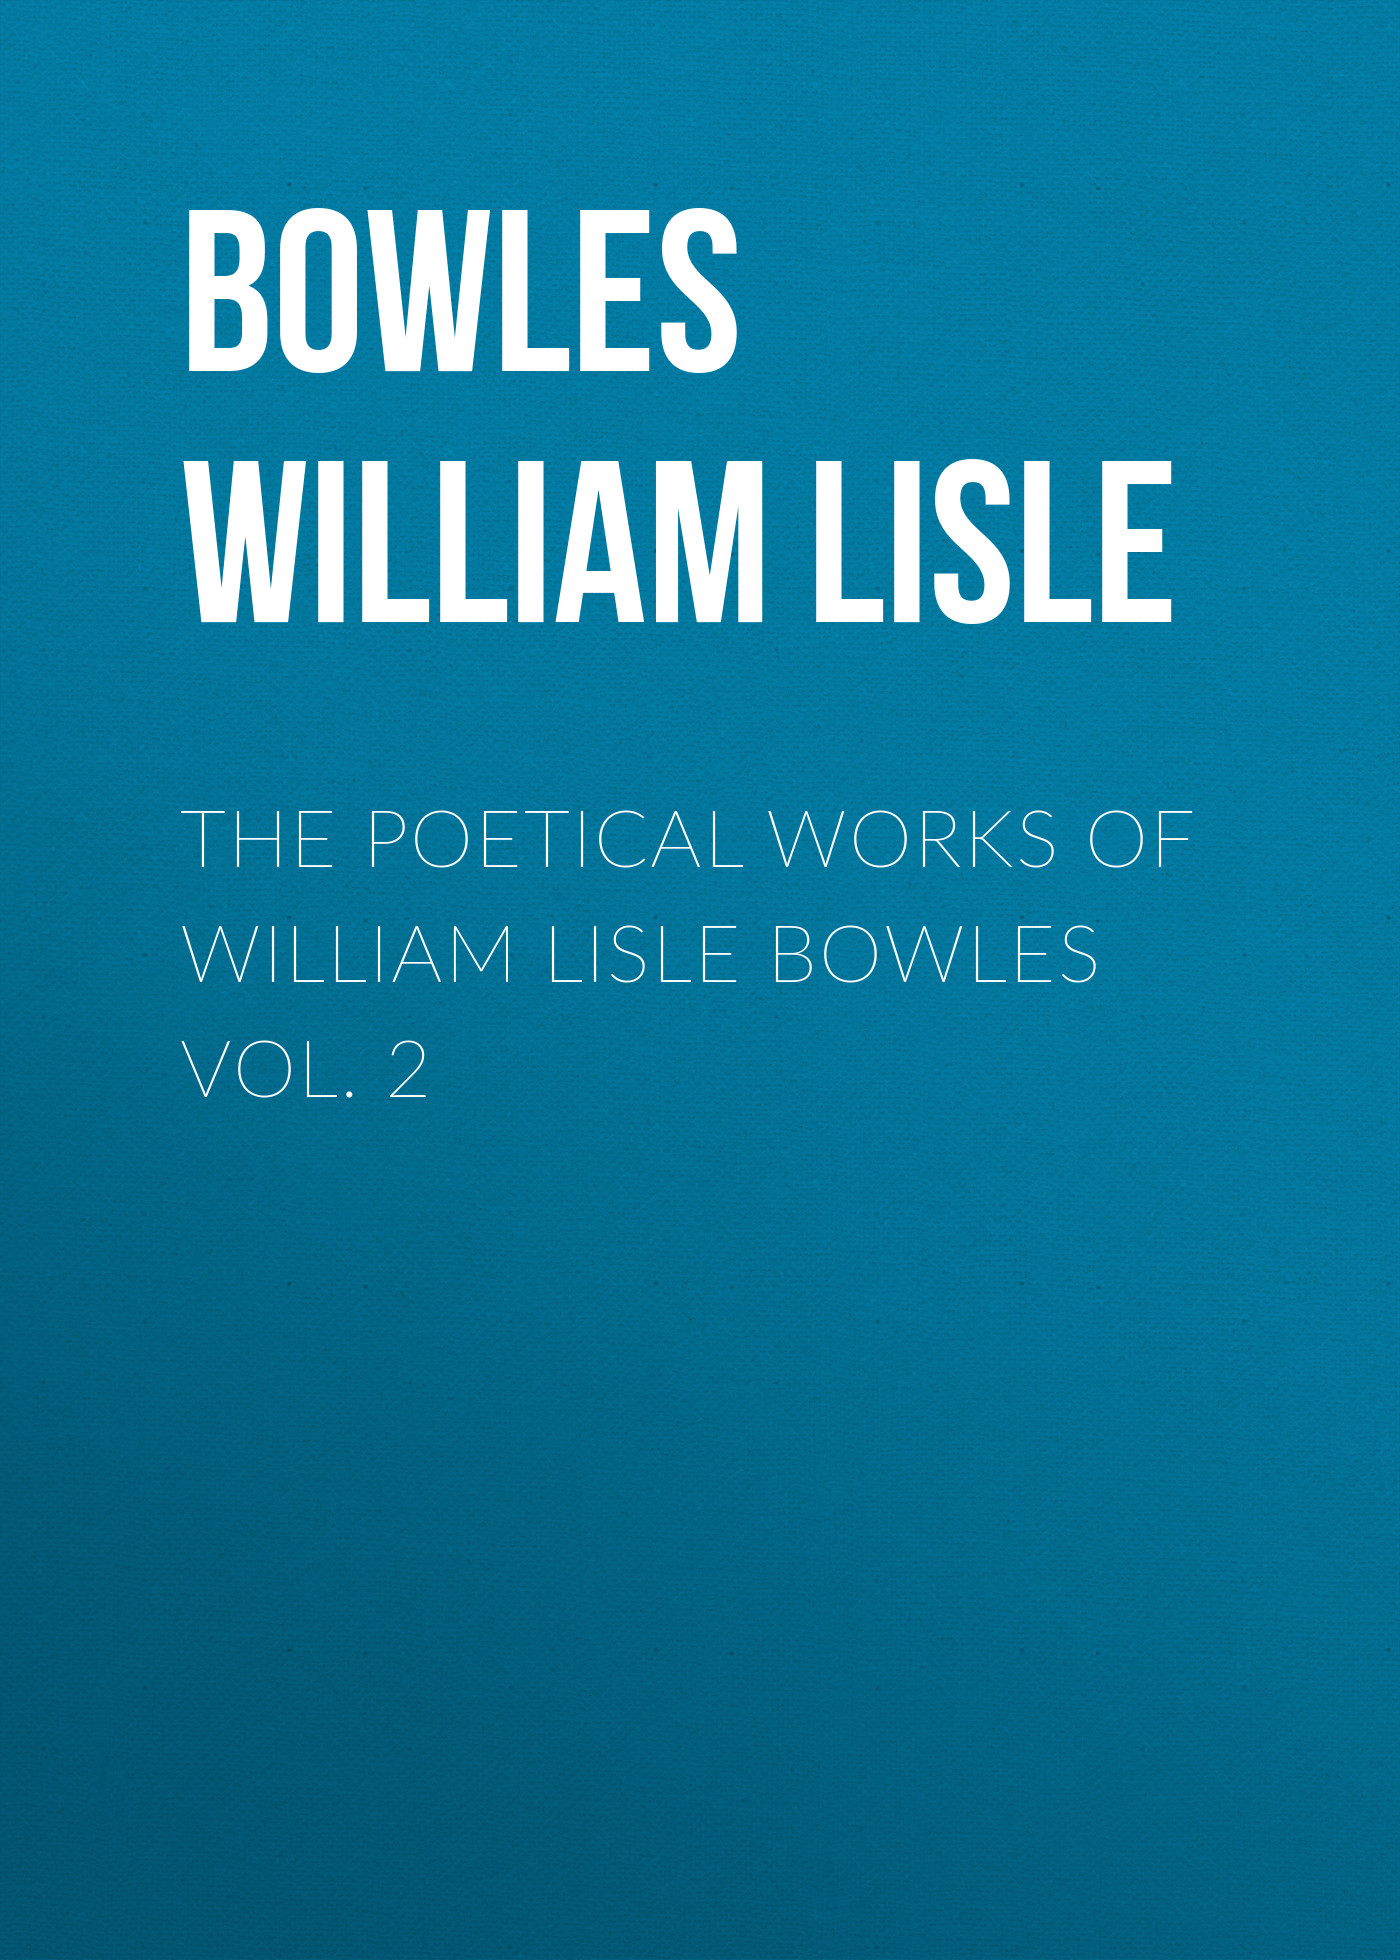 Bowles William Lisle The Poetical Works of William Lisle Bowles Vol. 2